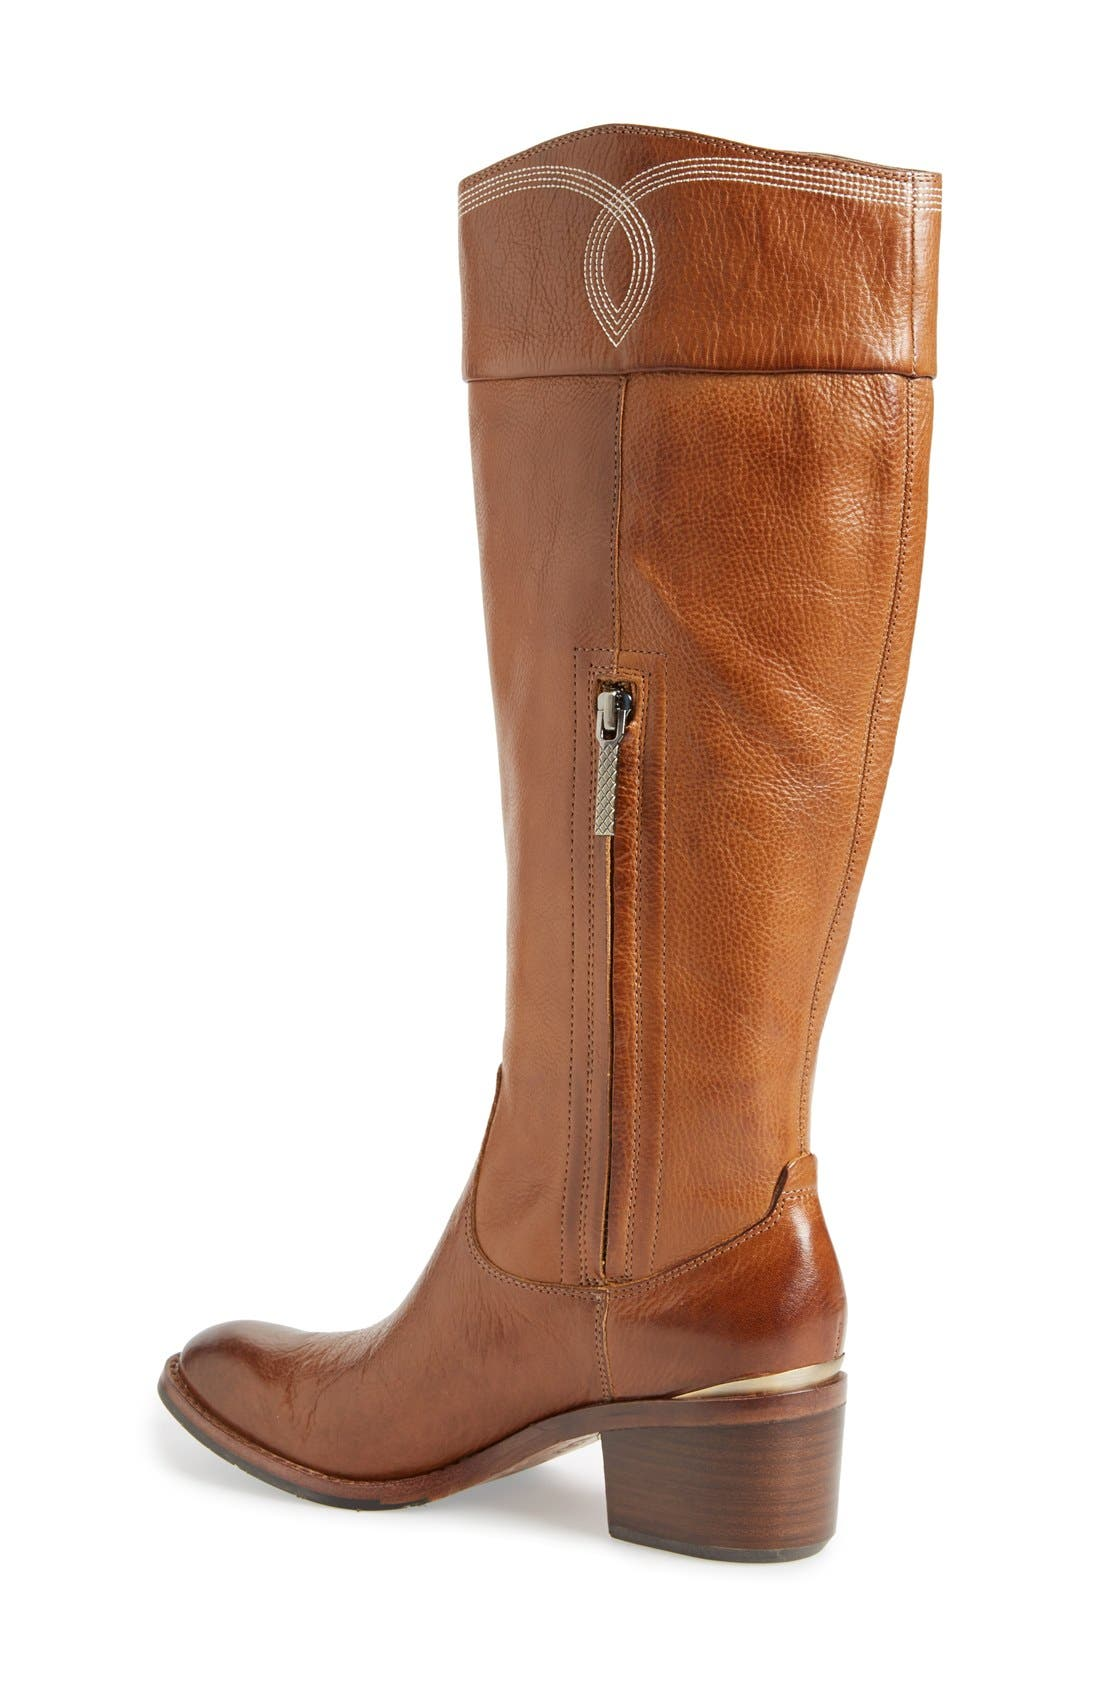 Alternate Image 2  - Donald J Pliner 'Willi' Tall Boot (Women)